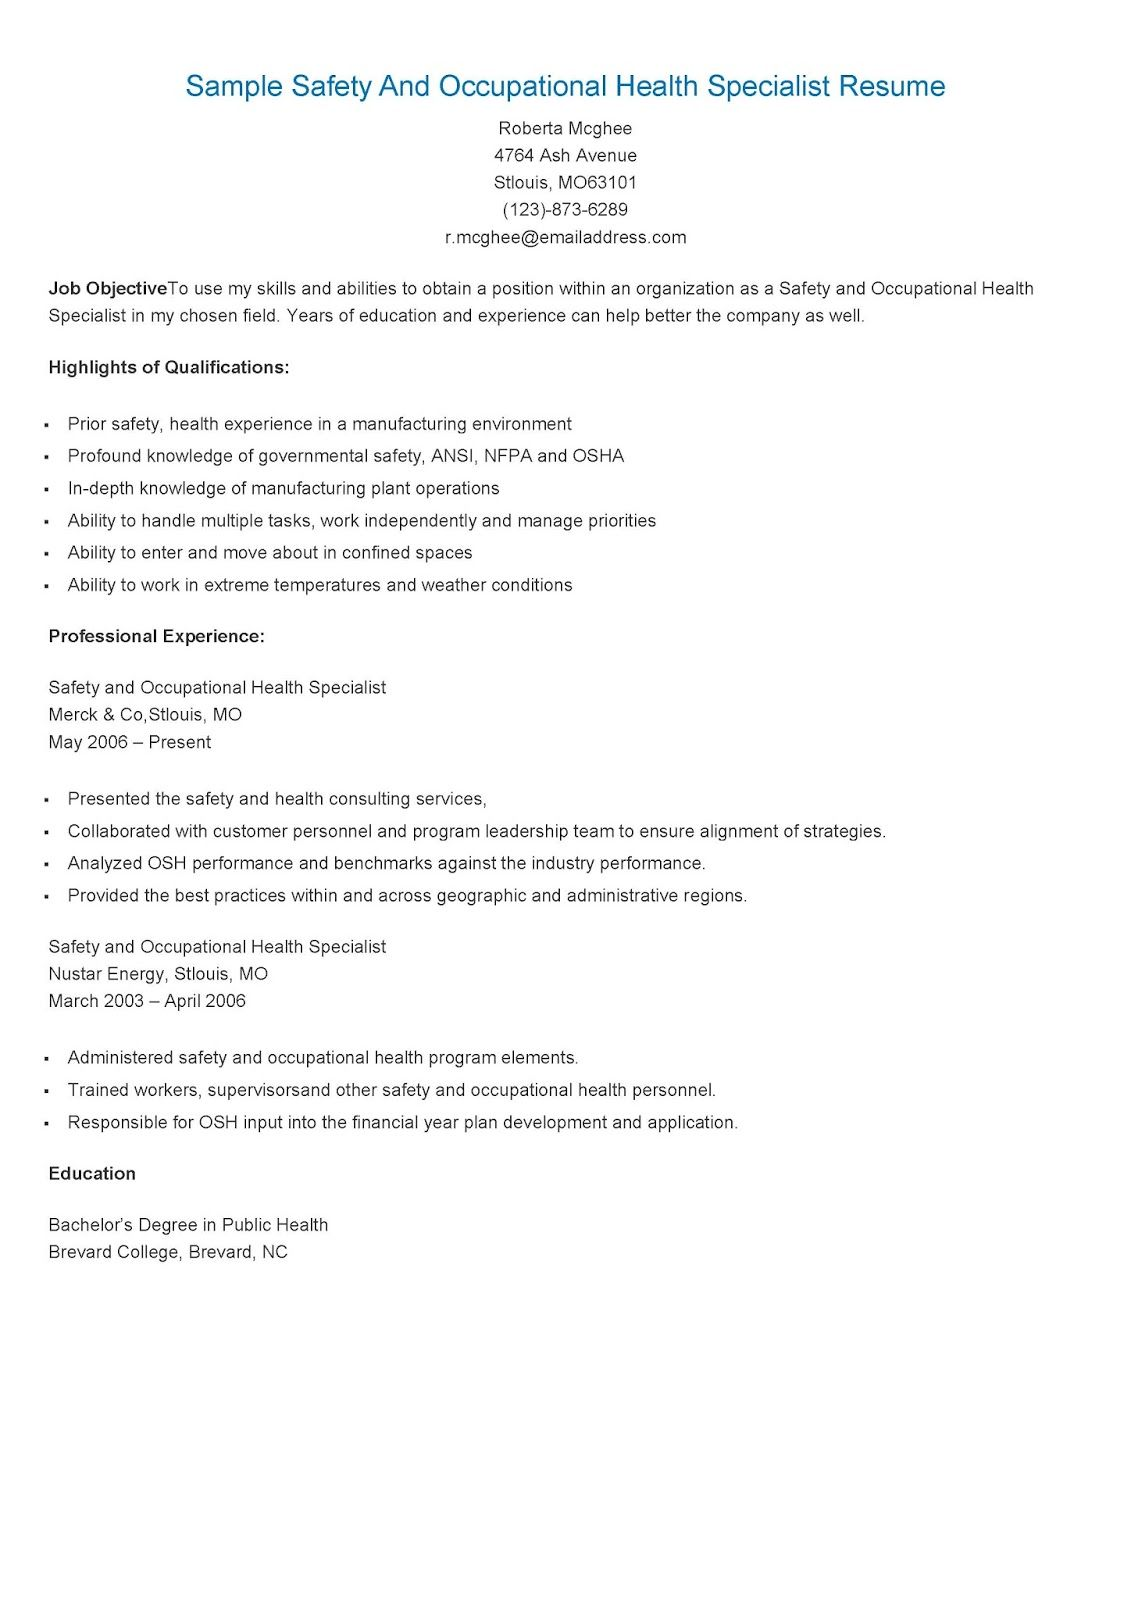 sample safety and occupational health specialist resume objective examples knowledge Resume Knowledge Management Resume Sample